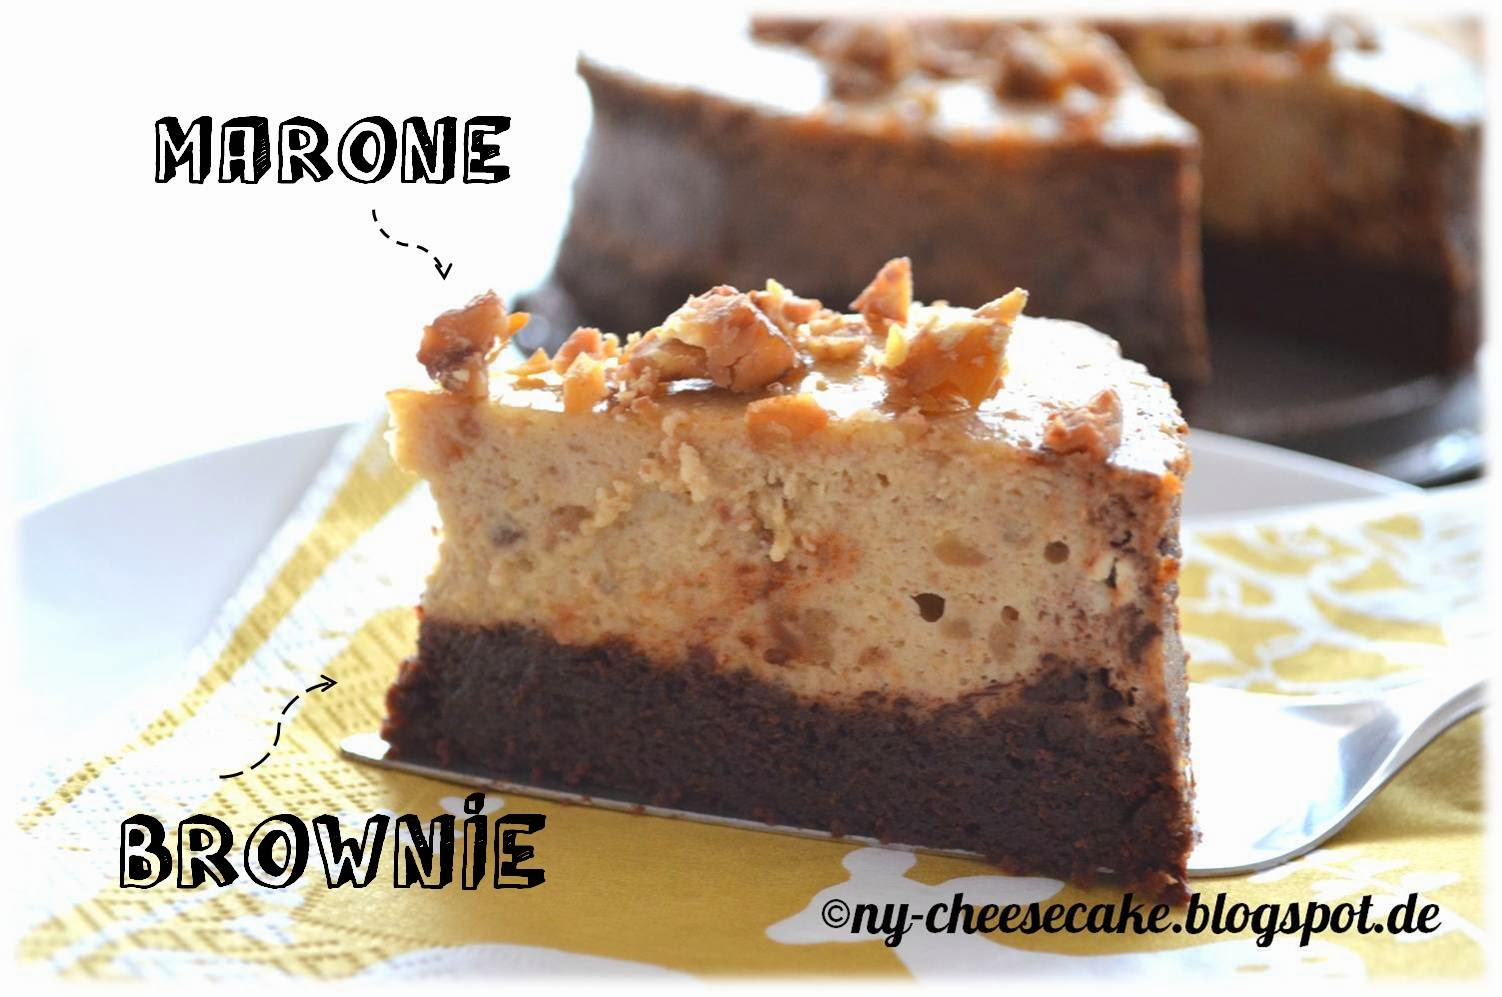 https://reihe11.com/2013/02/21/say-cheese-teil-5-maronen-cheesecake-auf-brownie-boden/